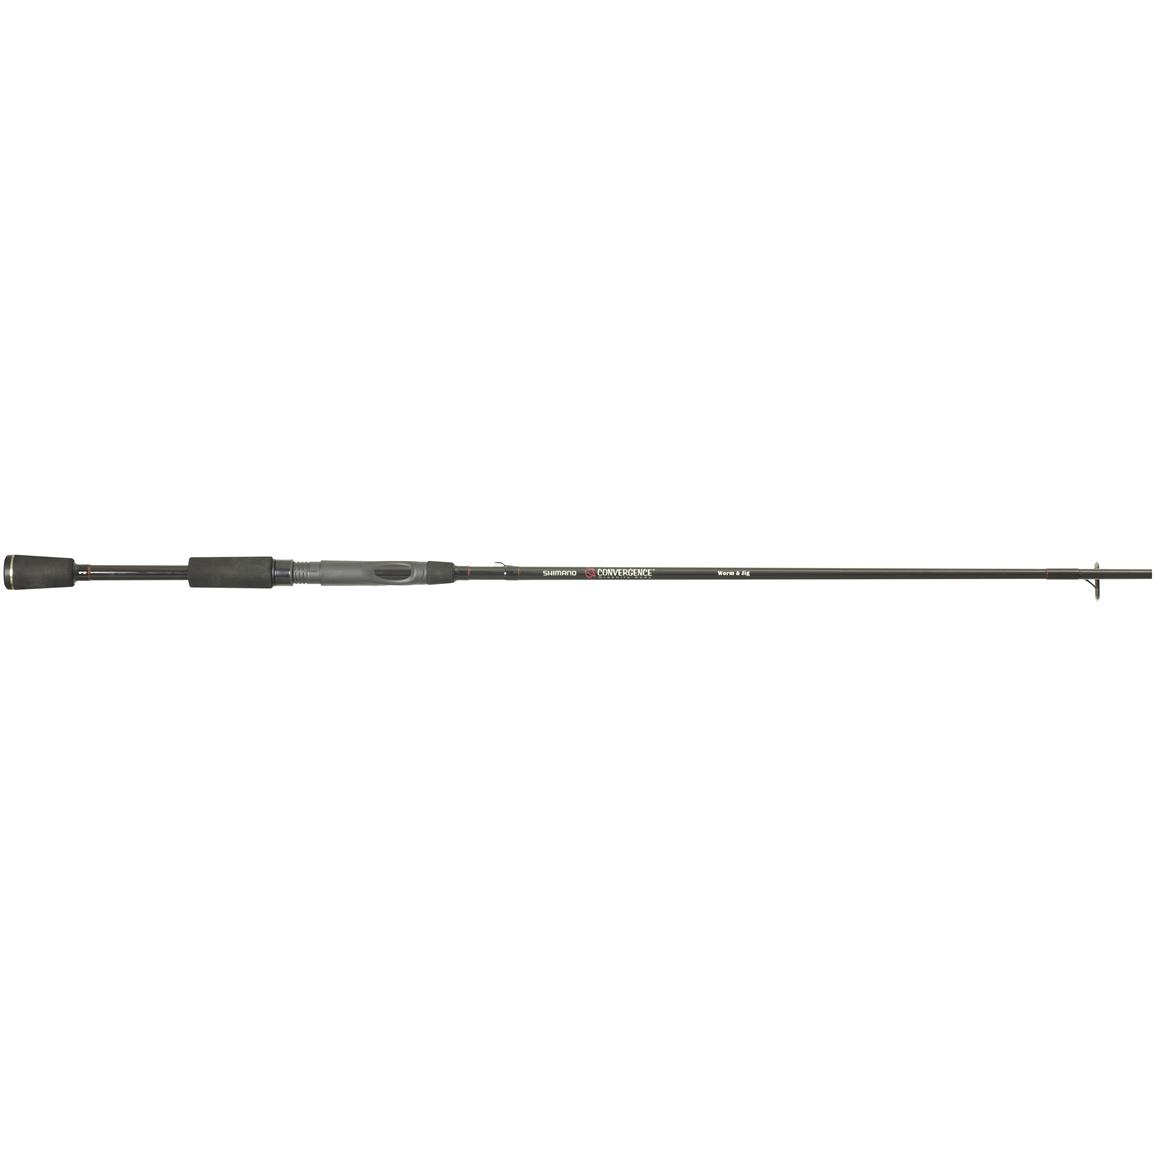 Shimano Convergence Spinning Rod - Worm